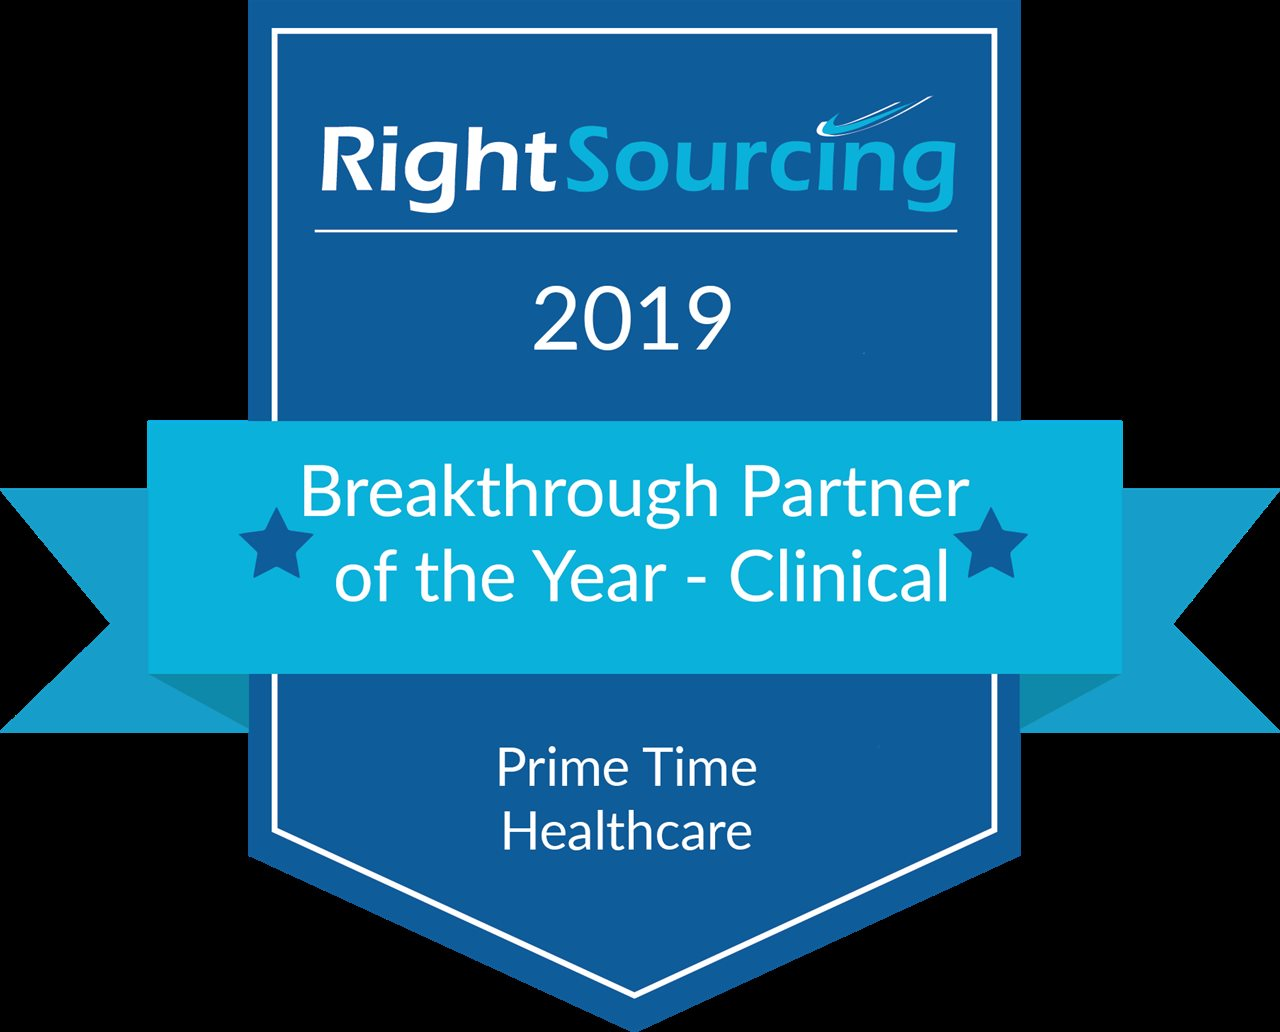 Right Sourcing